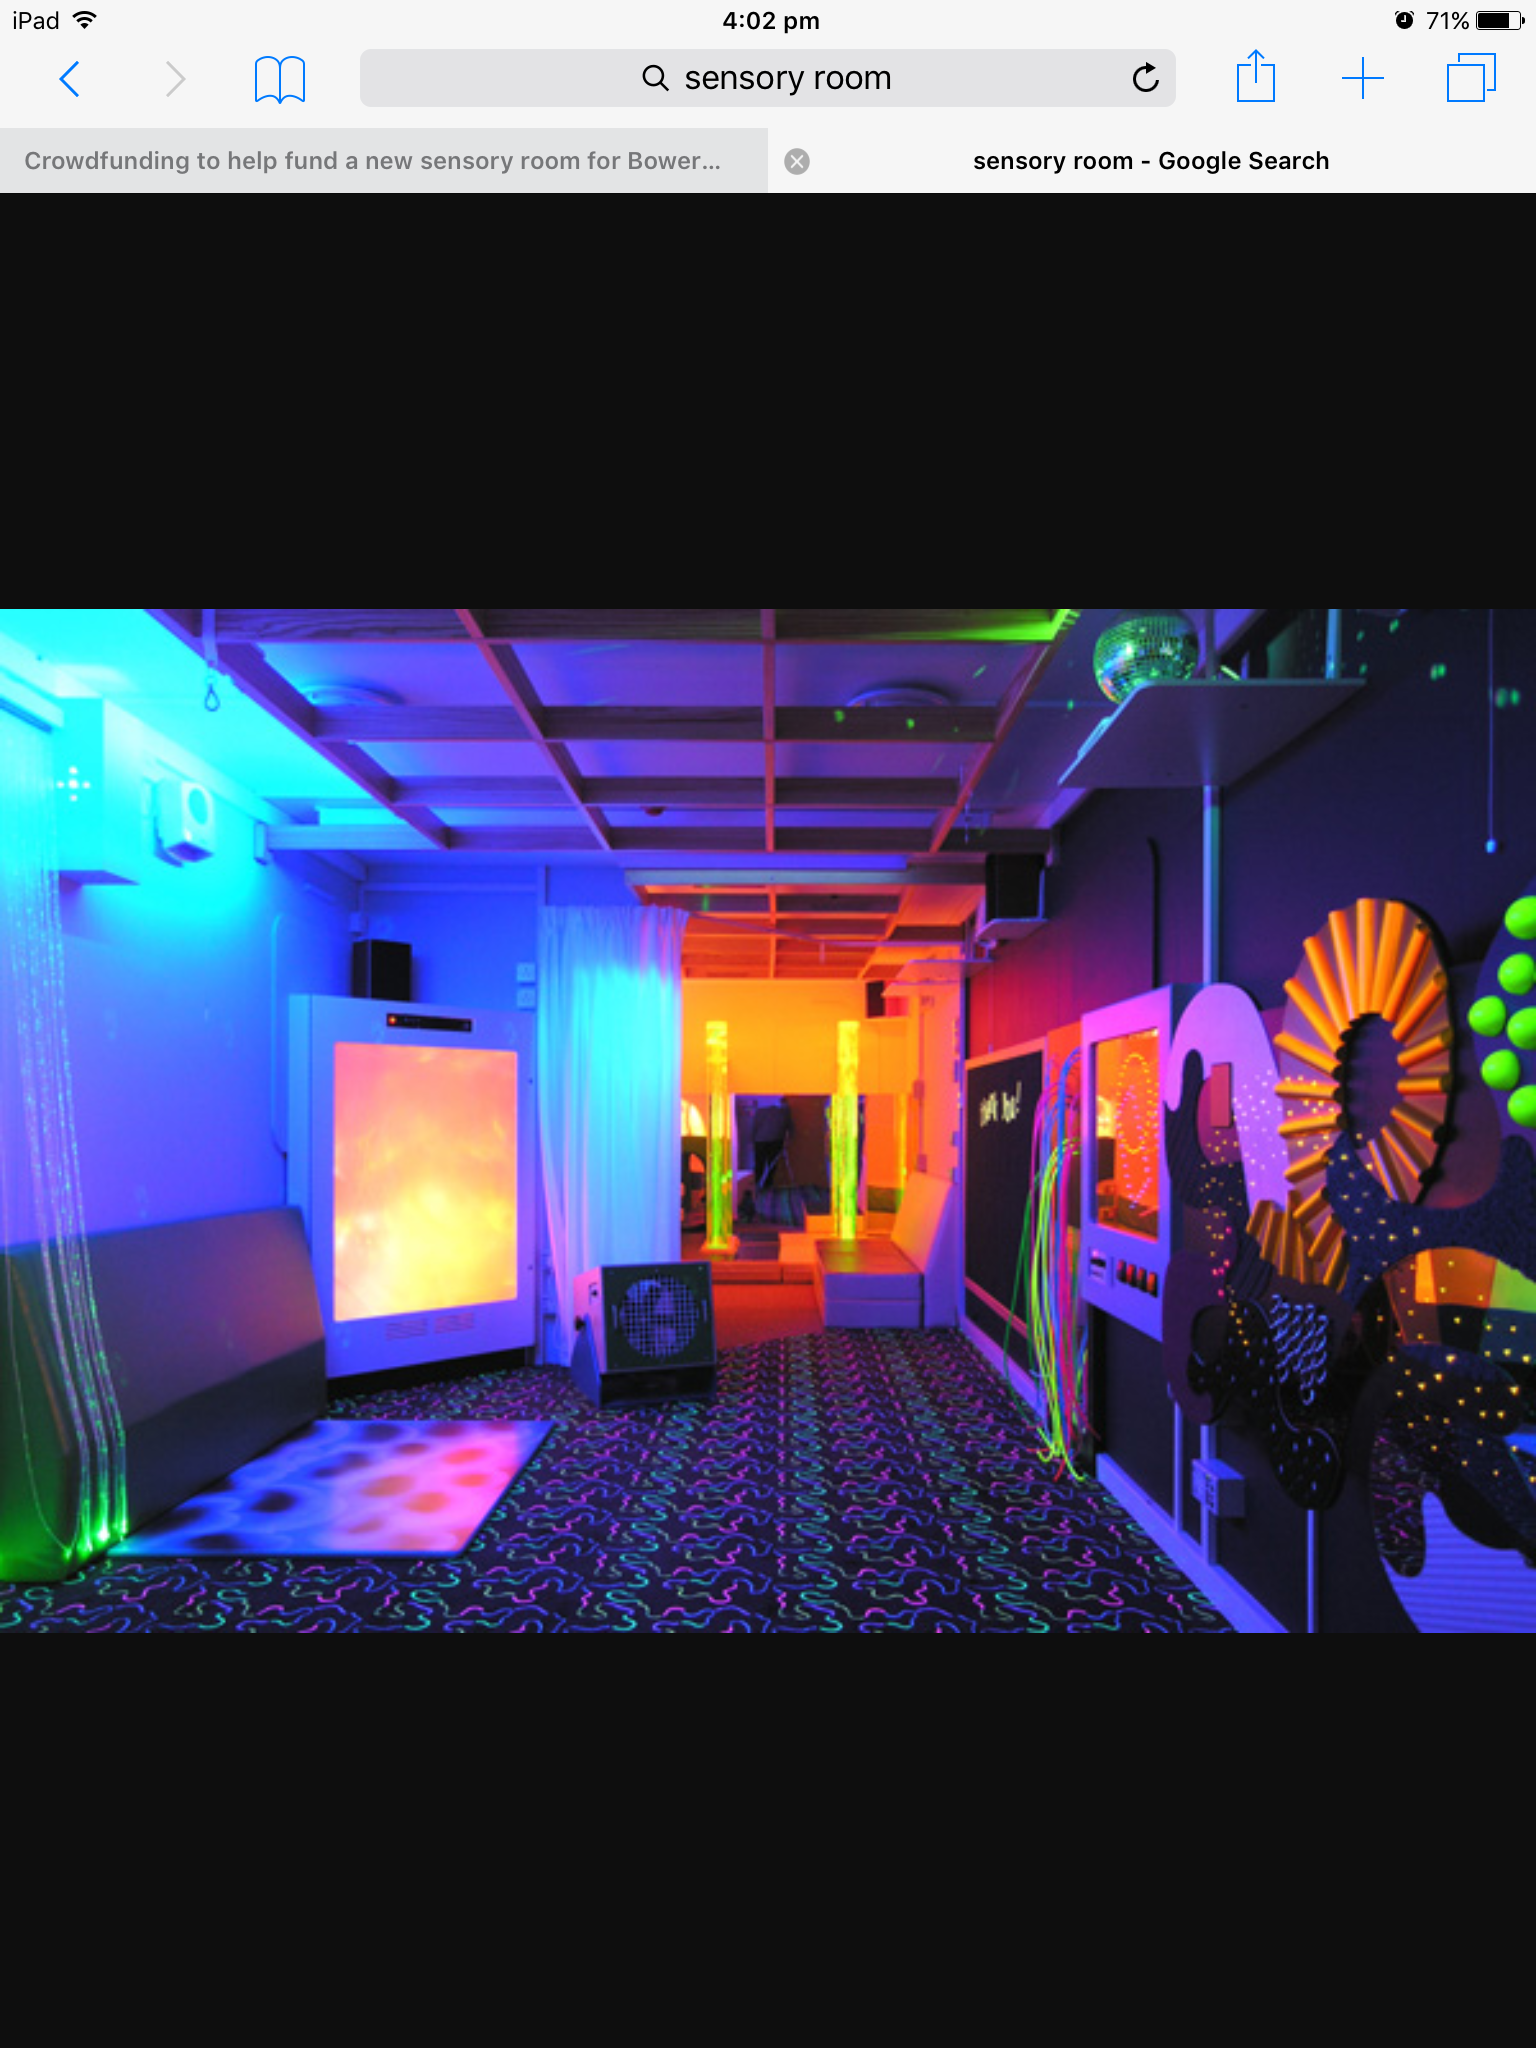 Bb 57 Engine Room: Crowdfunding To Help Fund A New Sensory Room For Bower